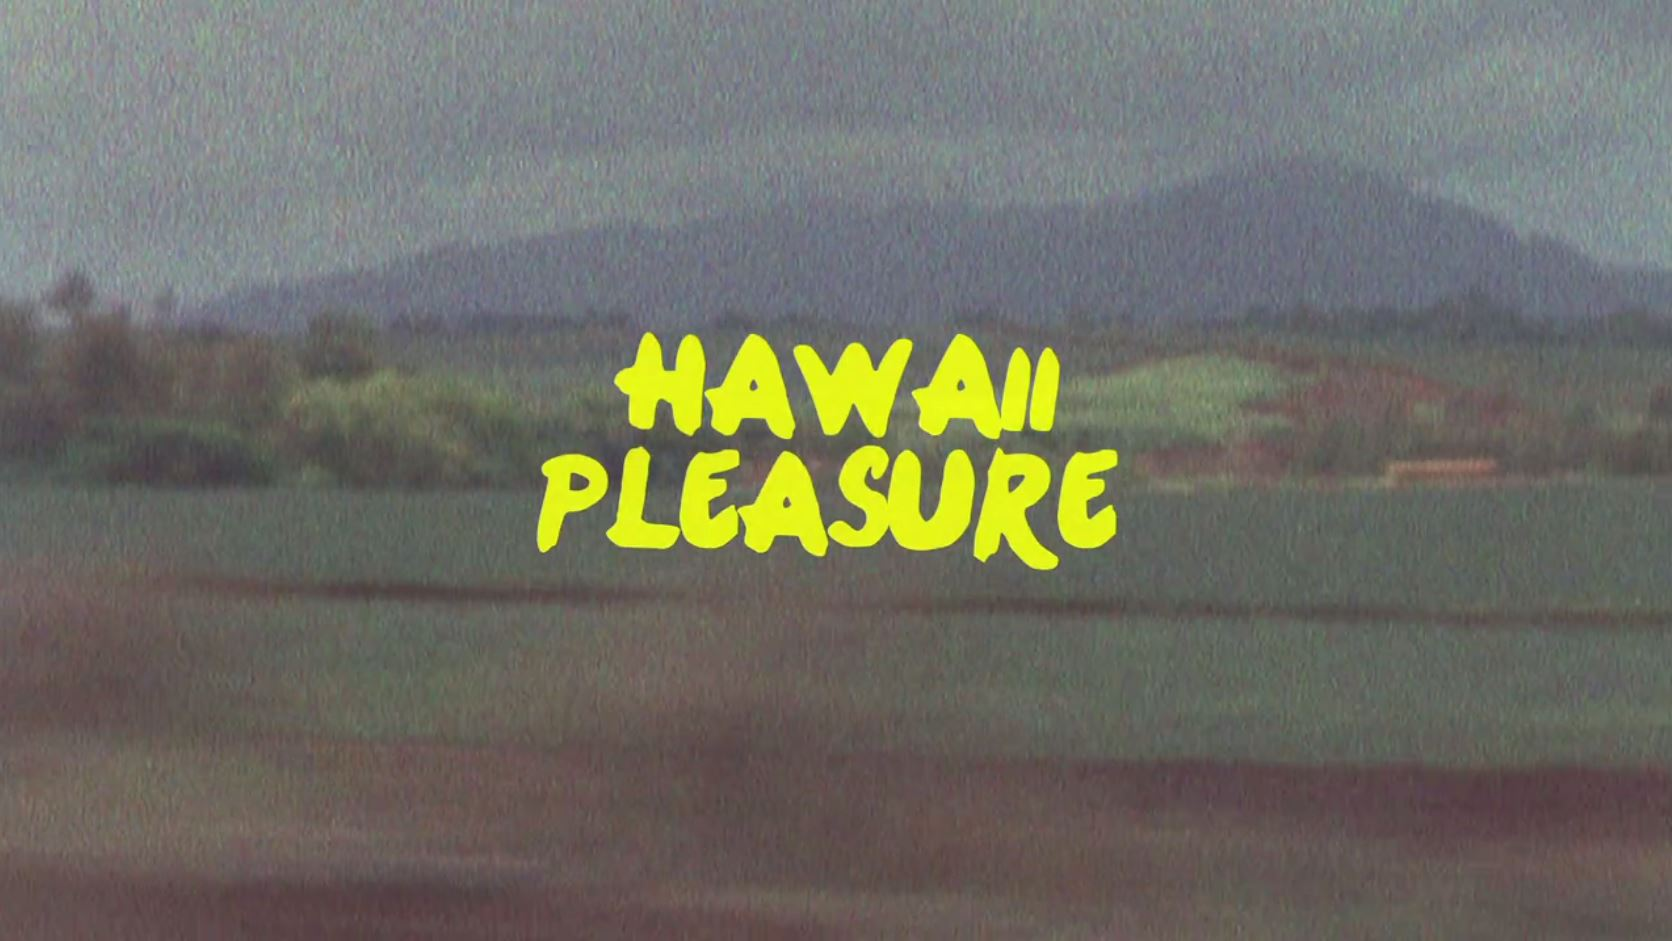 Hawaii Pleasure